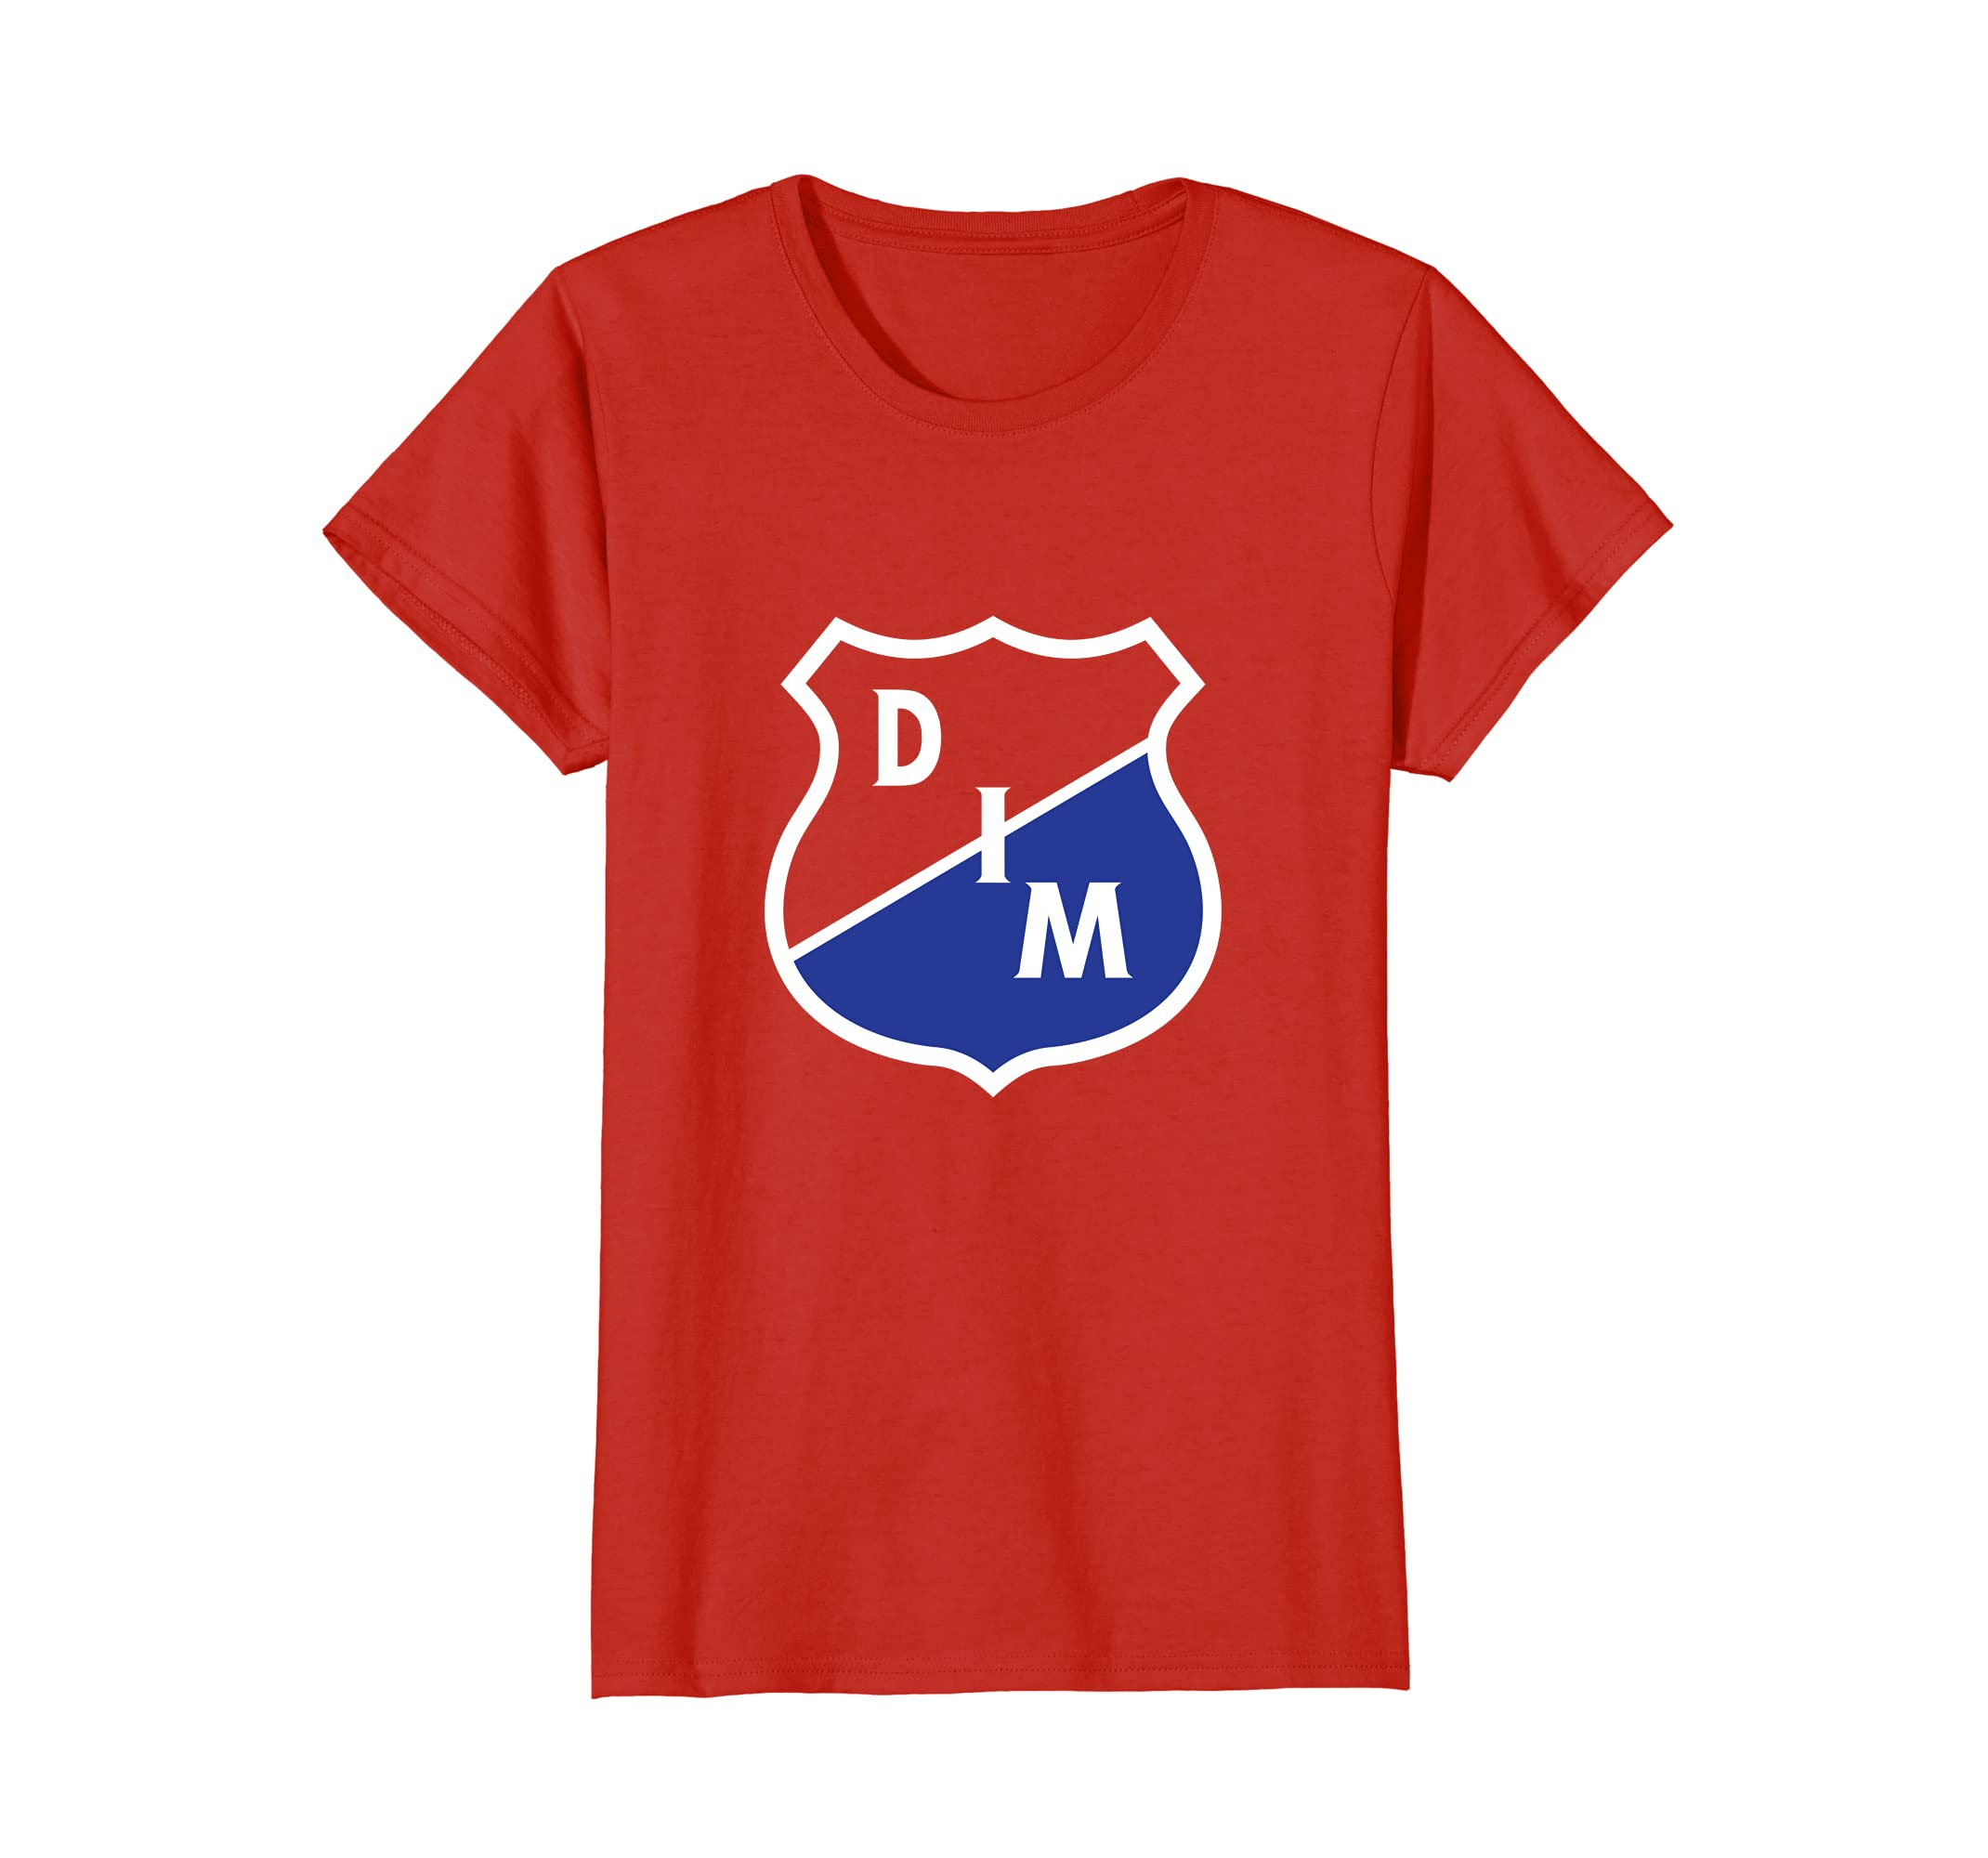 Amazon.com: Deportivo Independiente Medellin Colombia Futbol TShirt: Clothing